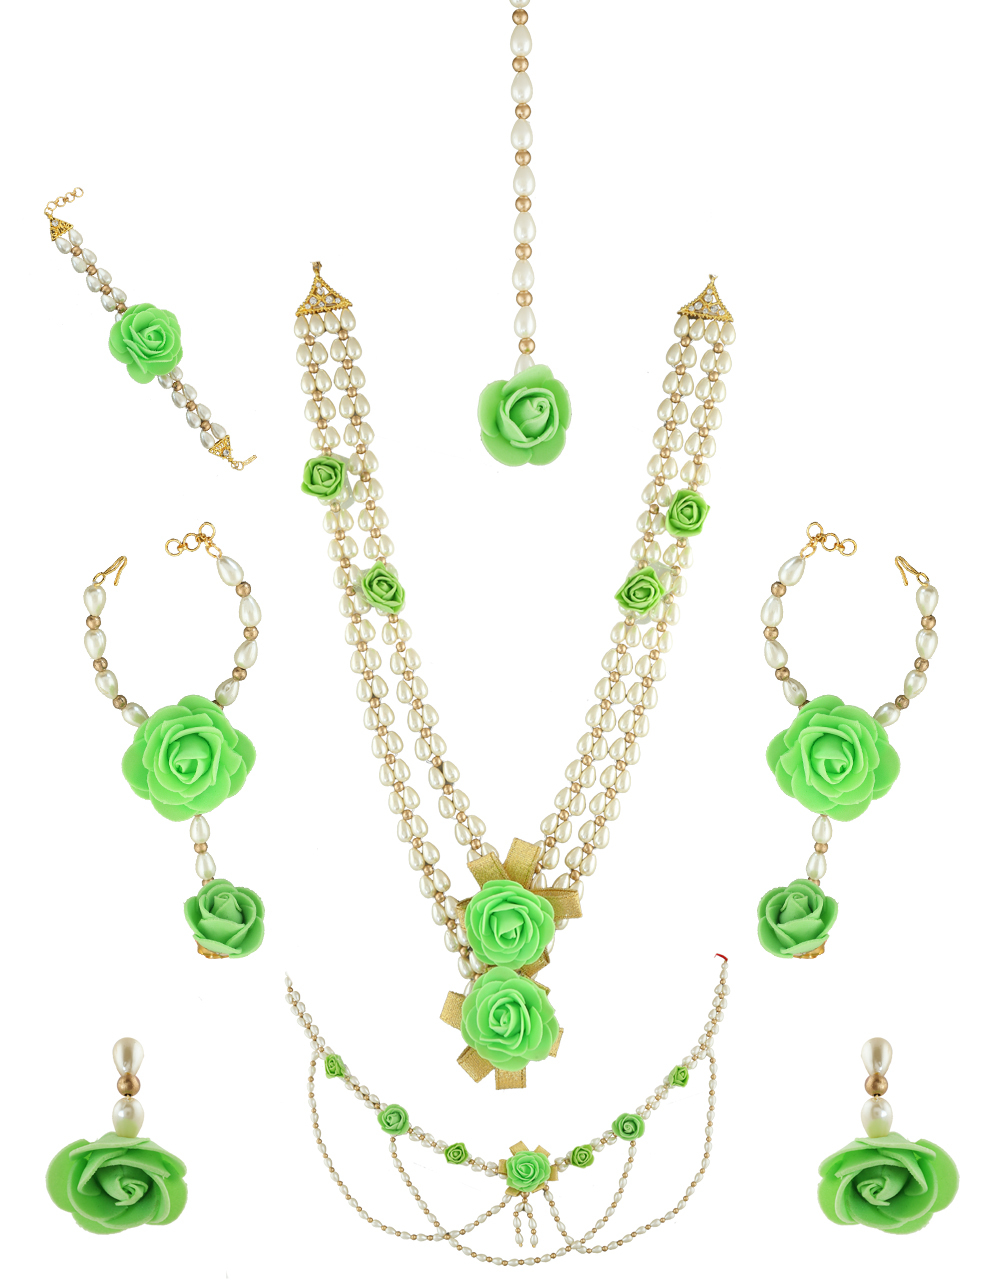 Green Colour Rose Flower Jewelry Styled With Pearls Beads Line Flower Jewelry For Godh Bharai